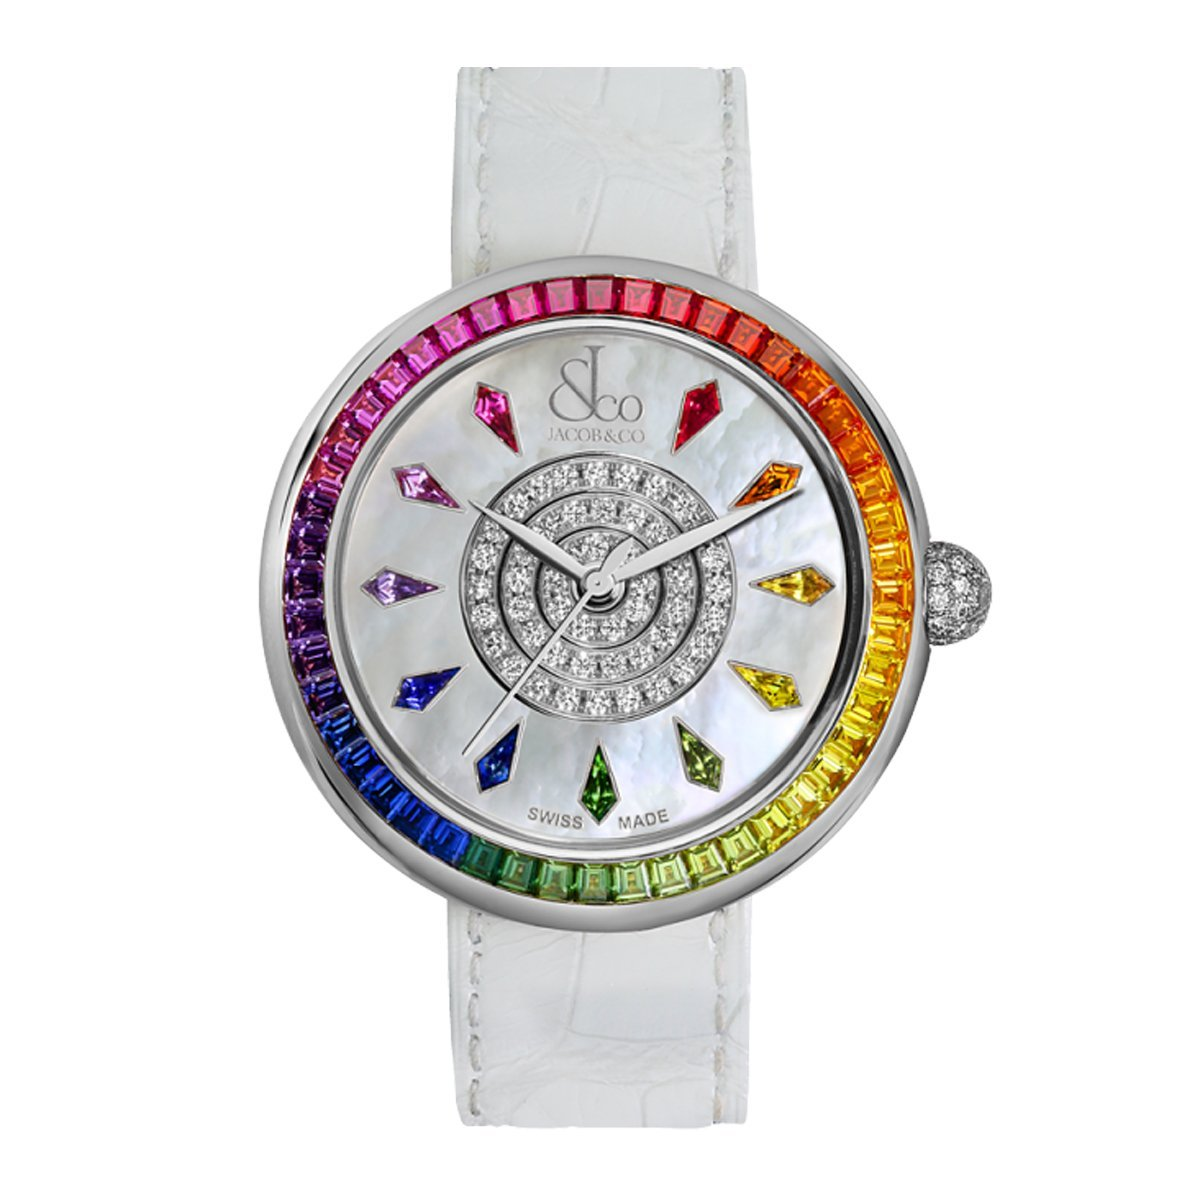 Jacob & Co. Brilliant Rainbow White Gold - Watches & Crystals